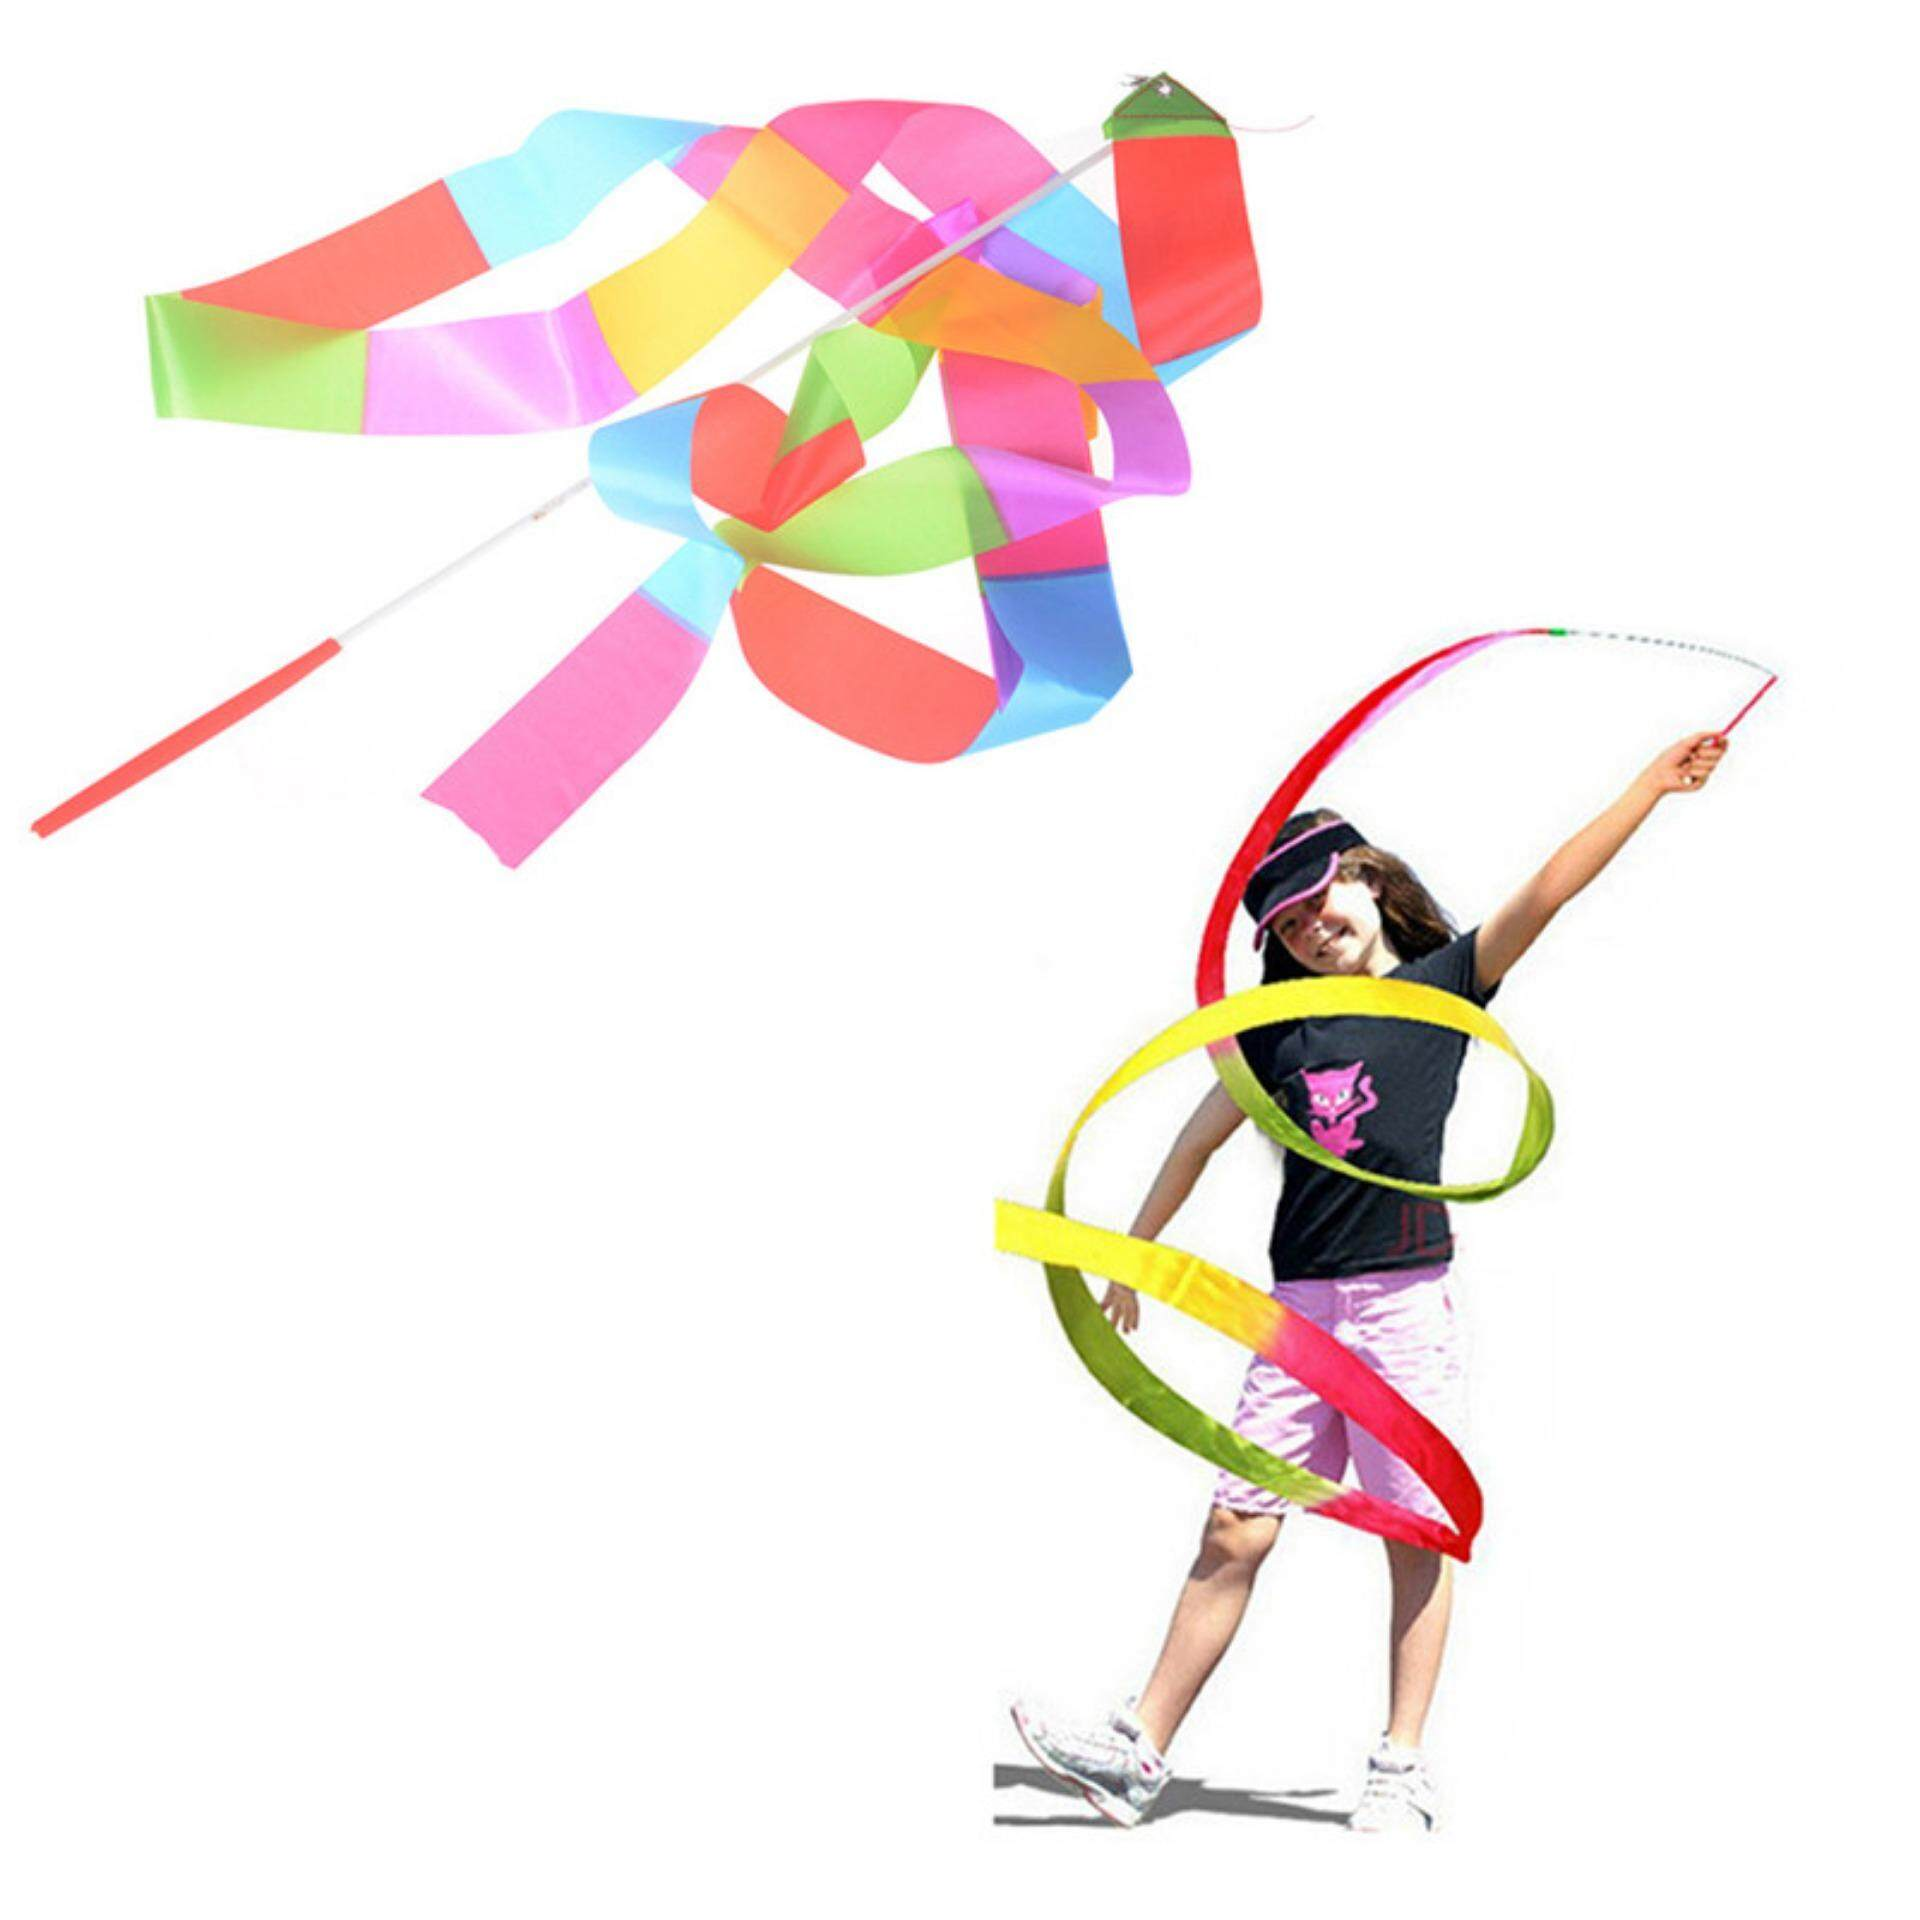 Popular Colorful 4m Ribbon Gymnastics Dance Dancer Toy Kid Game Sport Toy By Pinellia Flowers.